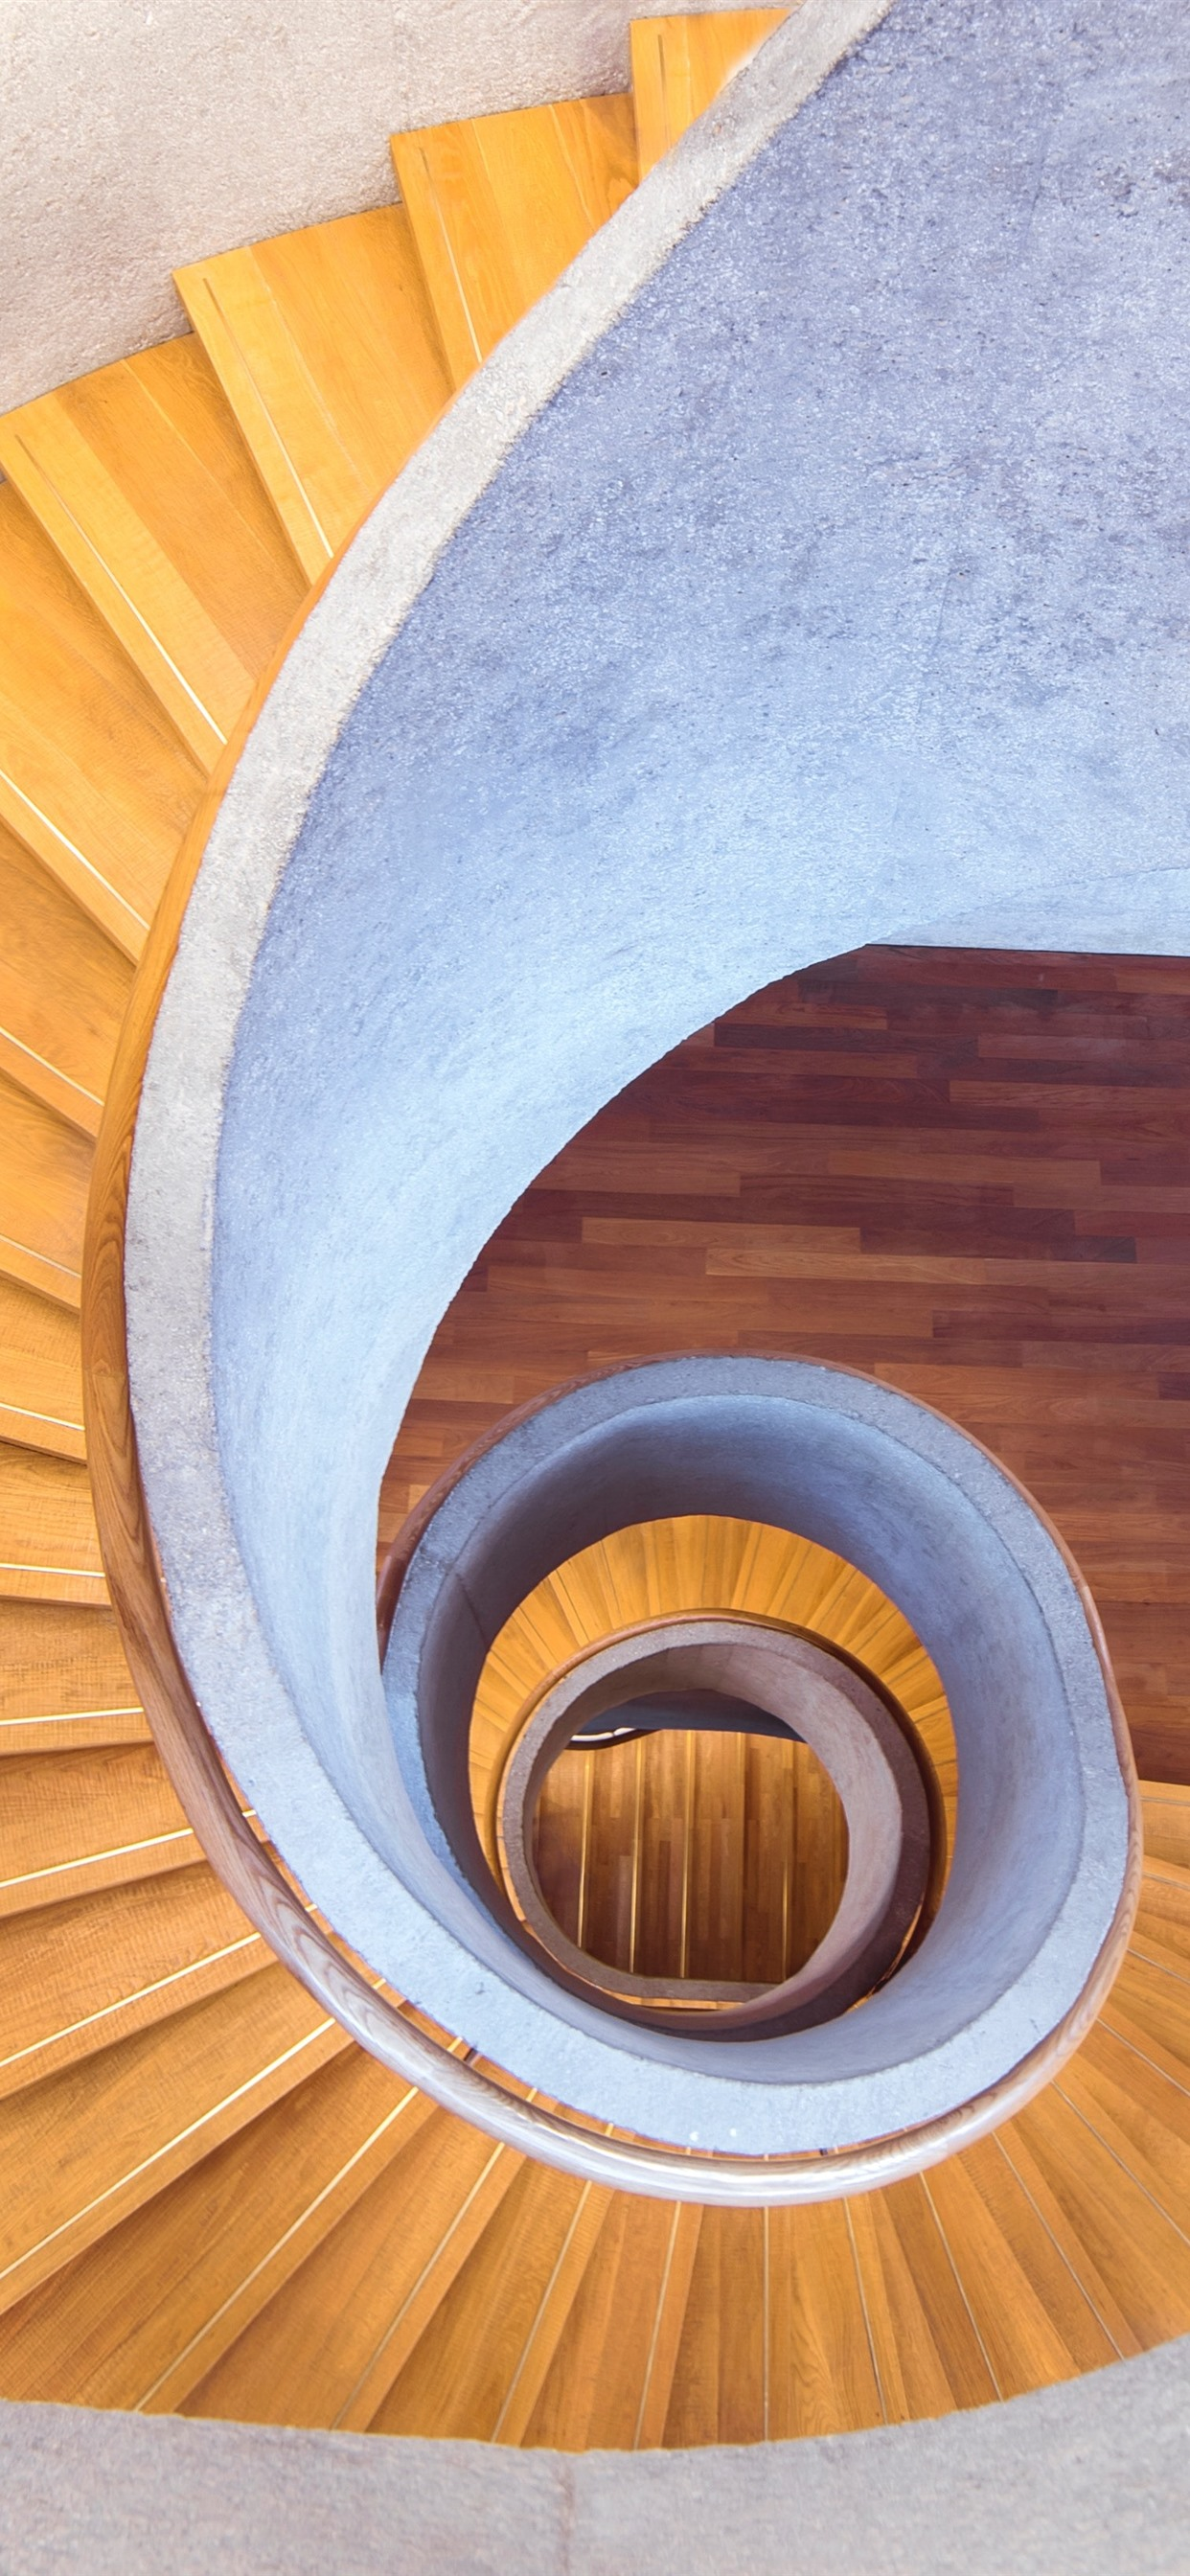 Interior Stairs Spiral 1242x2688 Iphone Xs Max Wallpaper